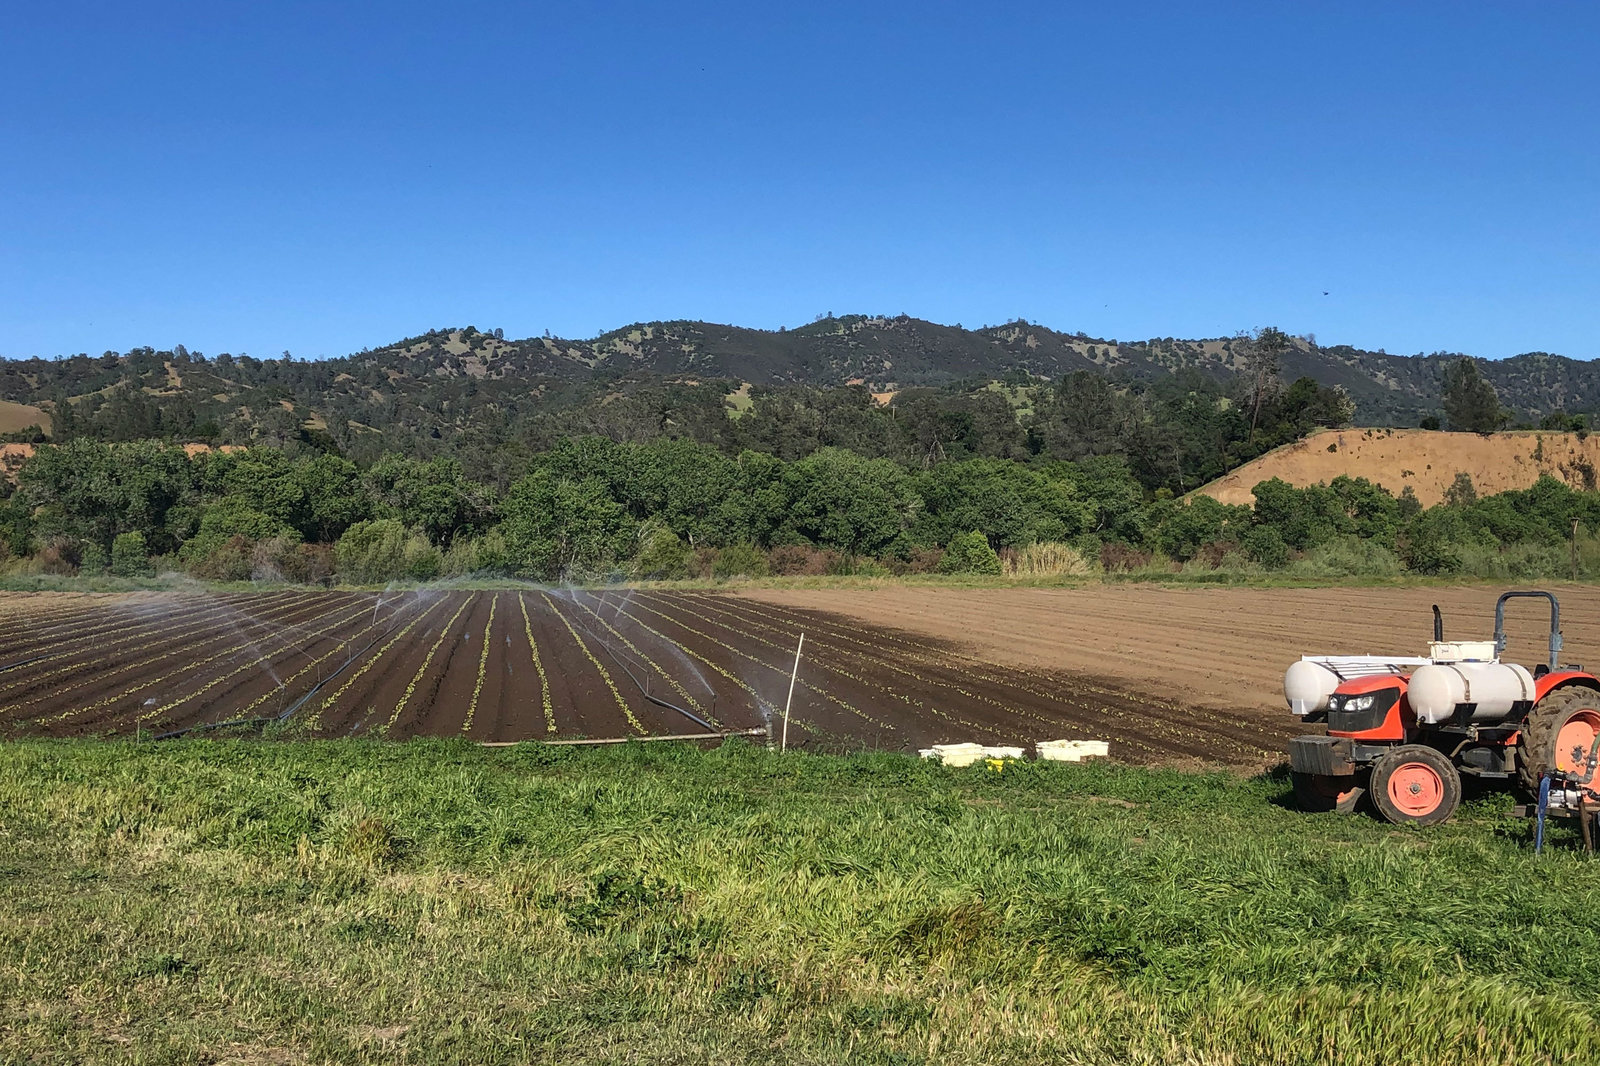 Farm field being irrigated with mountains in background and tractor in foreground